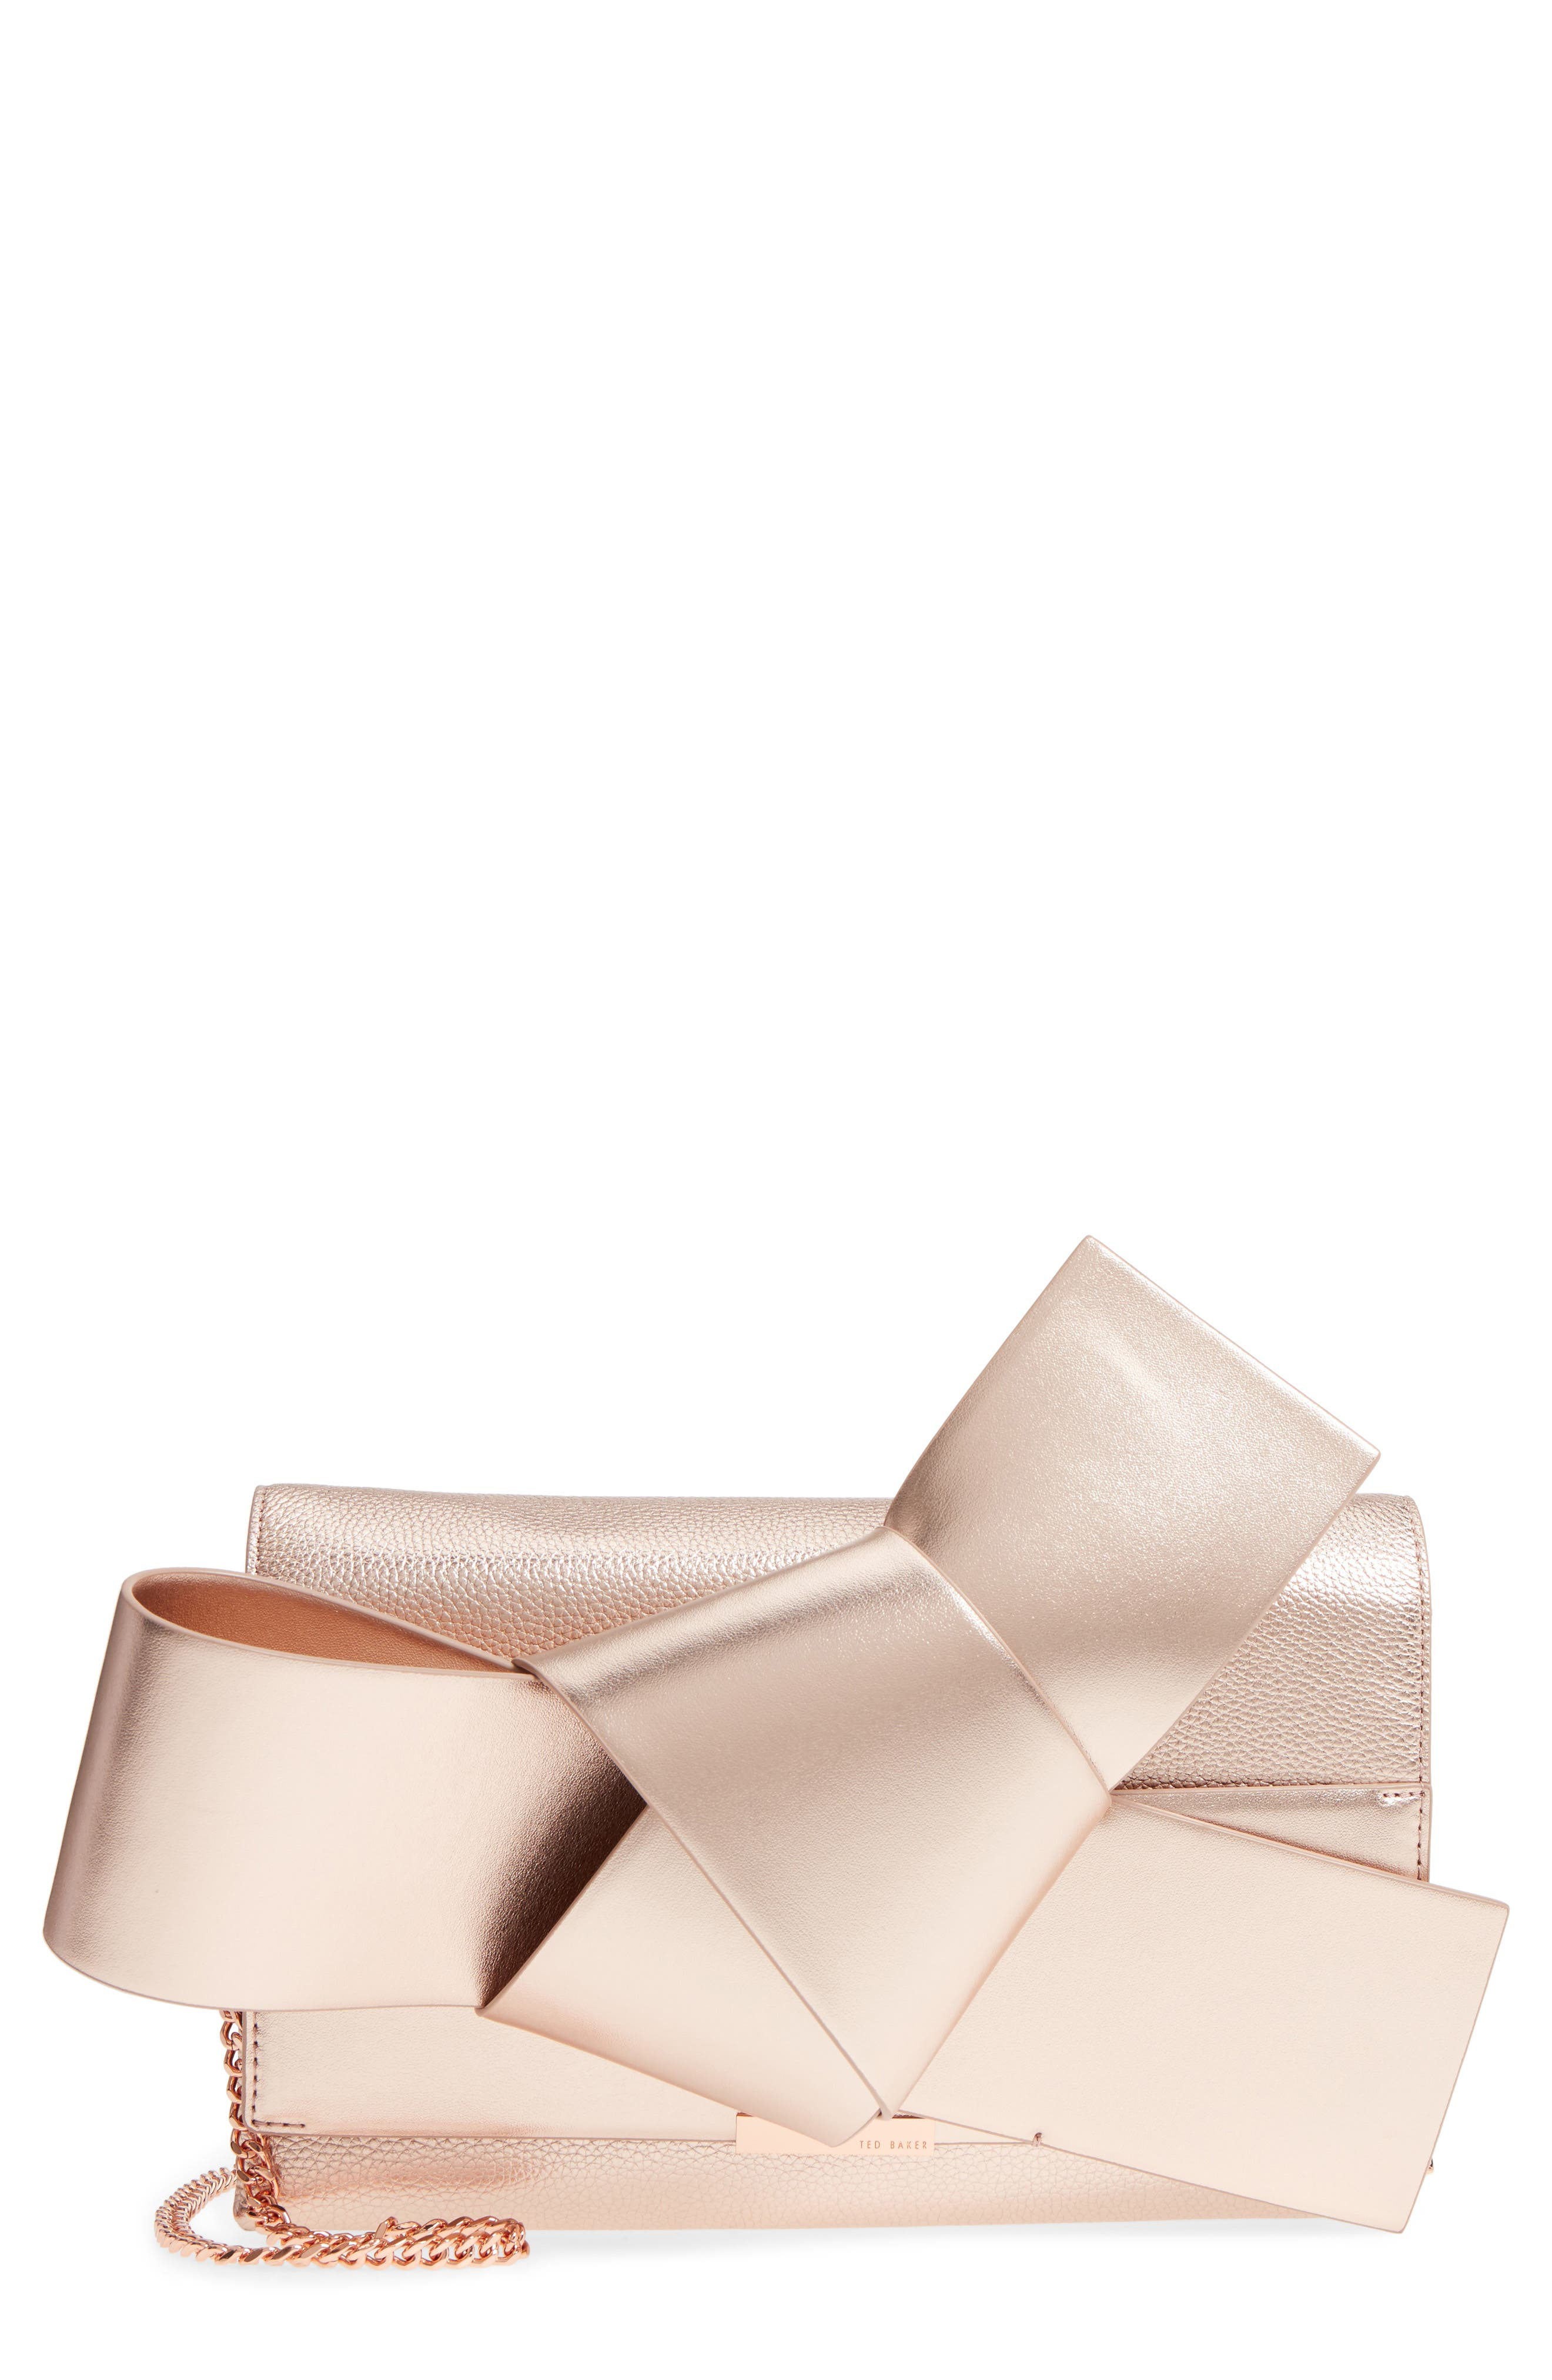 Knotted Bow Leather Clutch,                         Main,                         color, Rose Gold